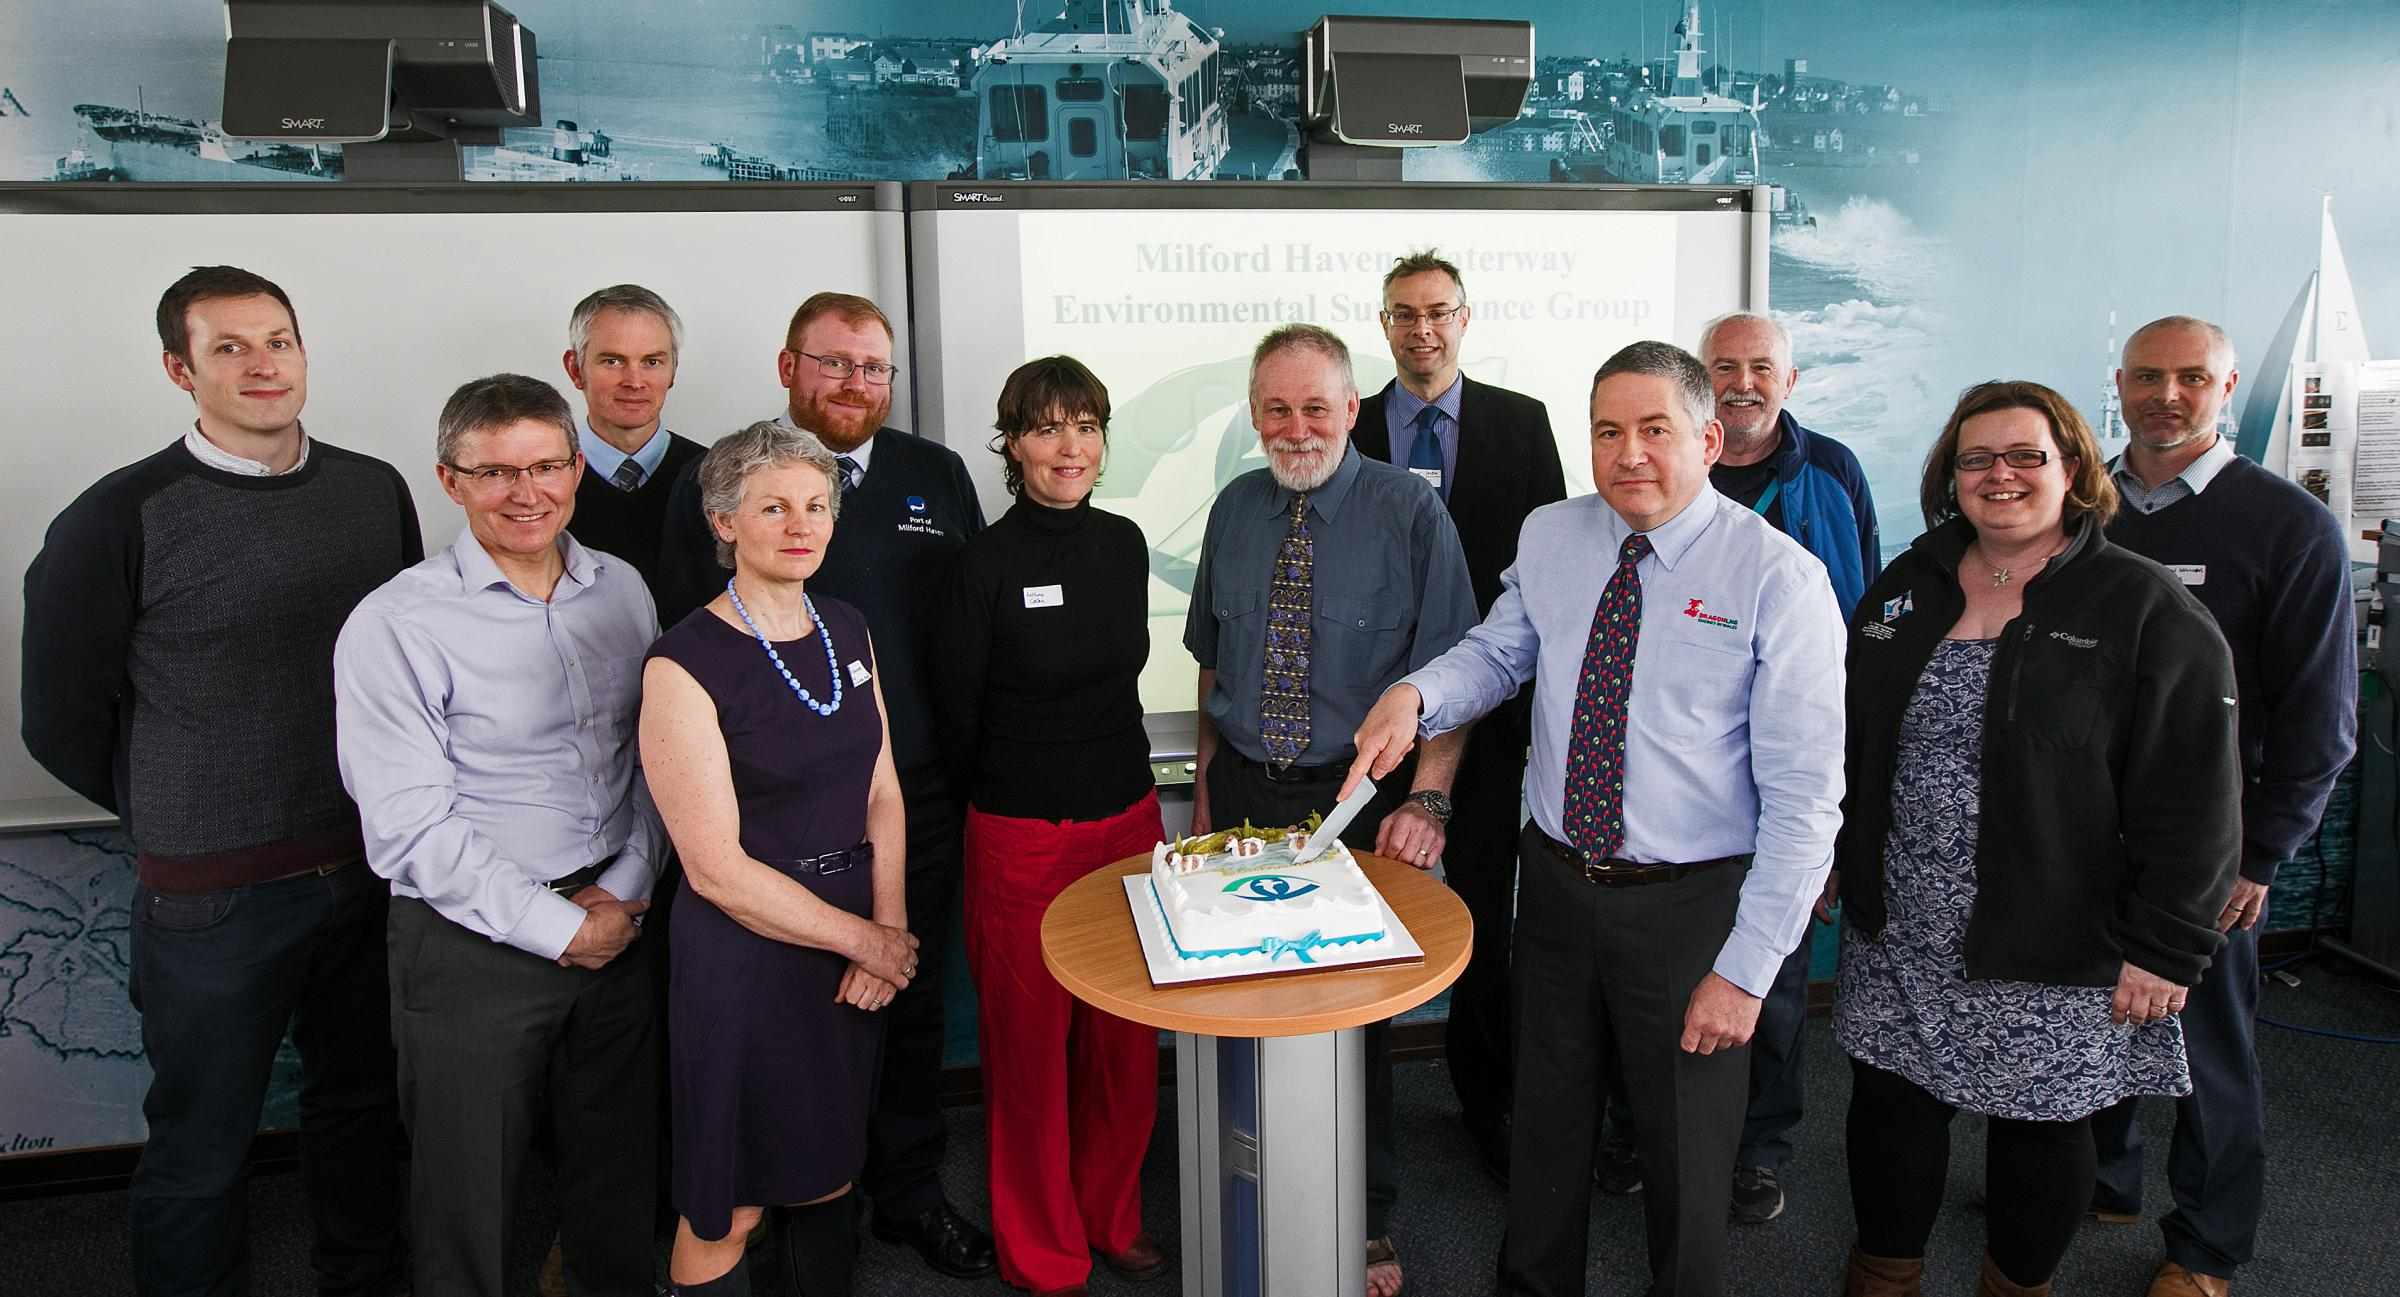 Members of the Milford Haven Waterway Environmental Surveillance Group celebrate their 25th anniversary.